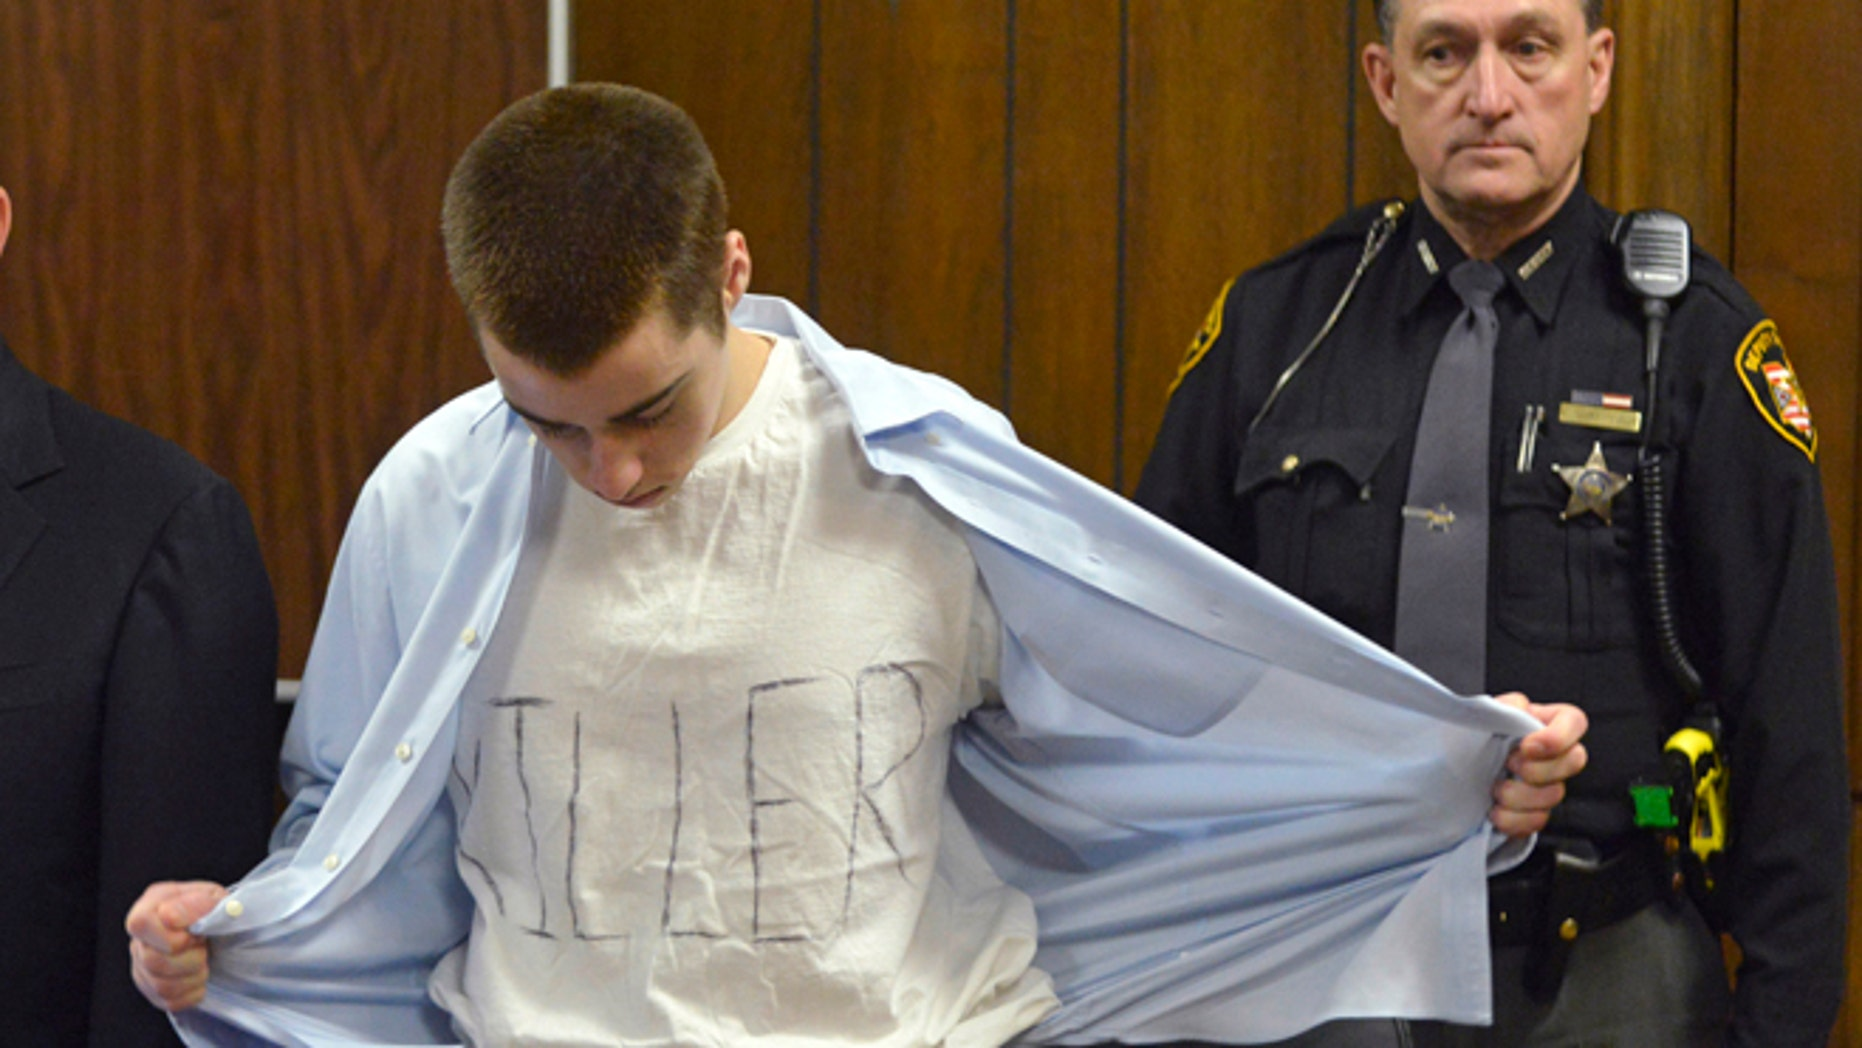 March 19: T.J. Lane unbuttons his shirt during sentencing Tuesday, March 19, 2013, in Chardon, Ohio.